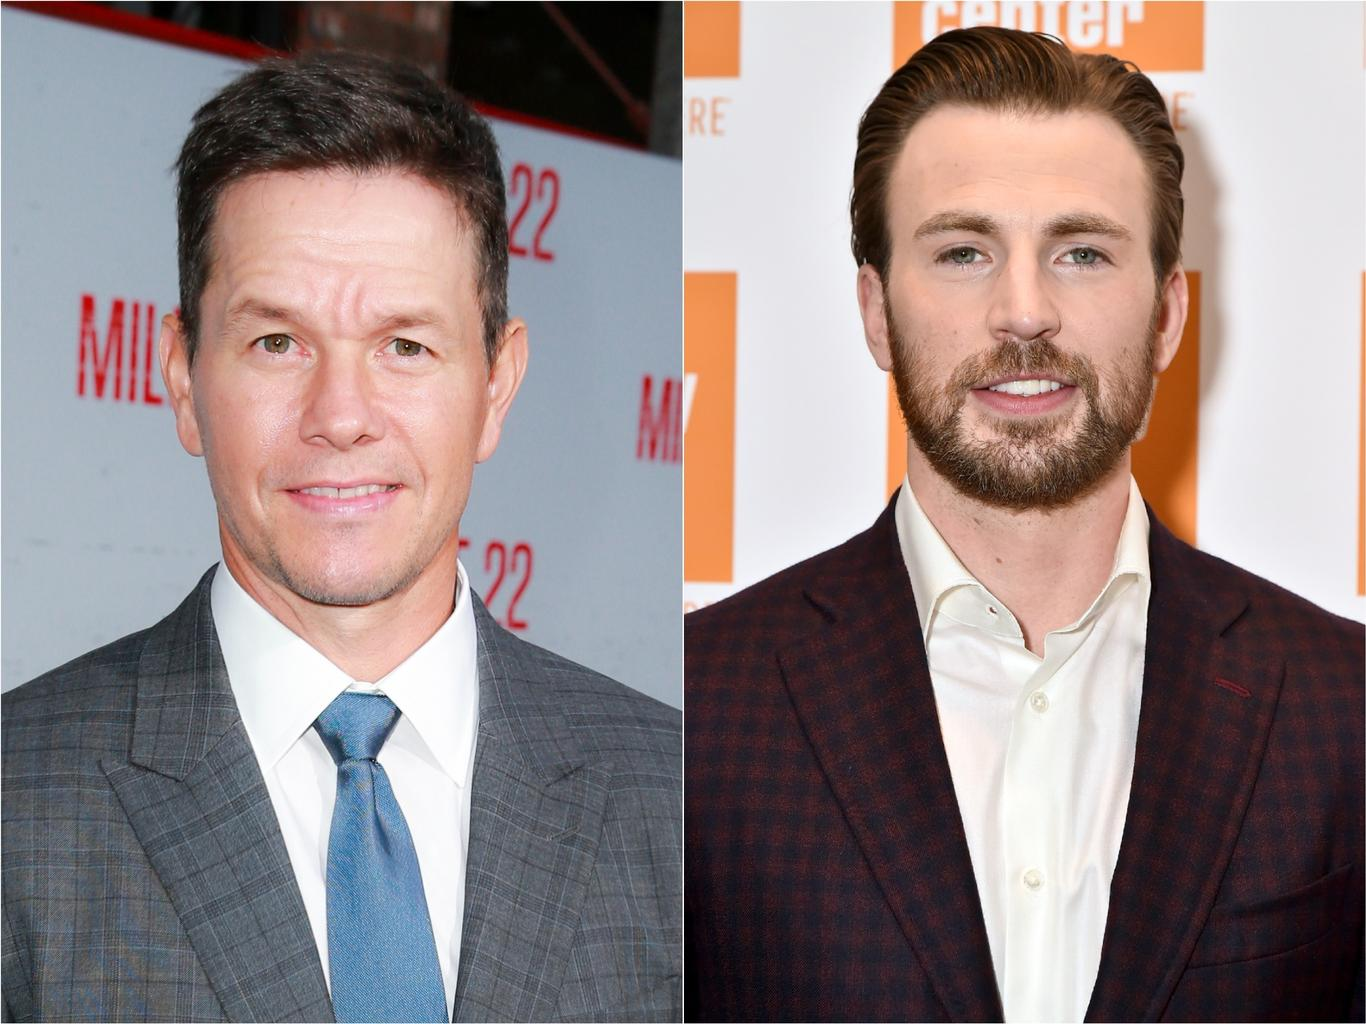 Mark Wahlberg In Talks To Replace Chris Evans In Paramount's 'Infinite'